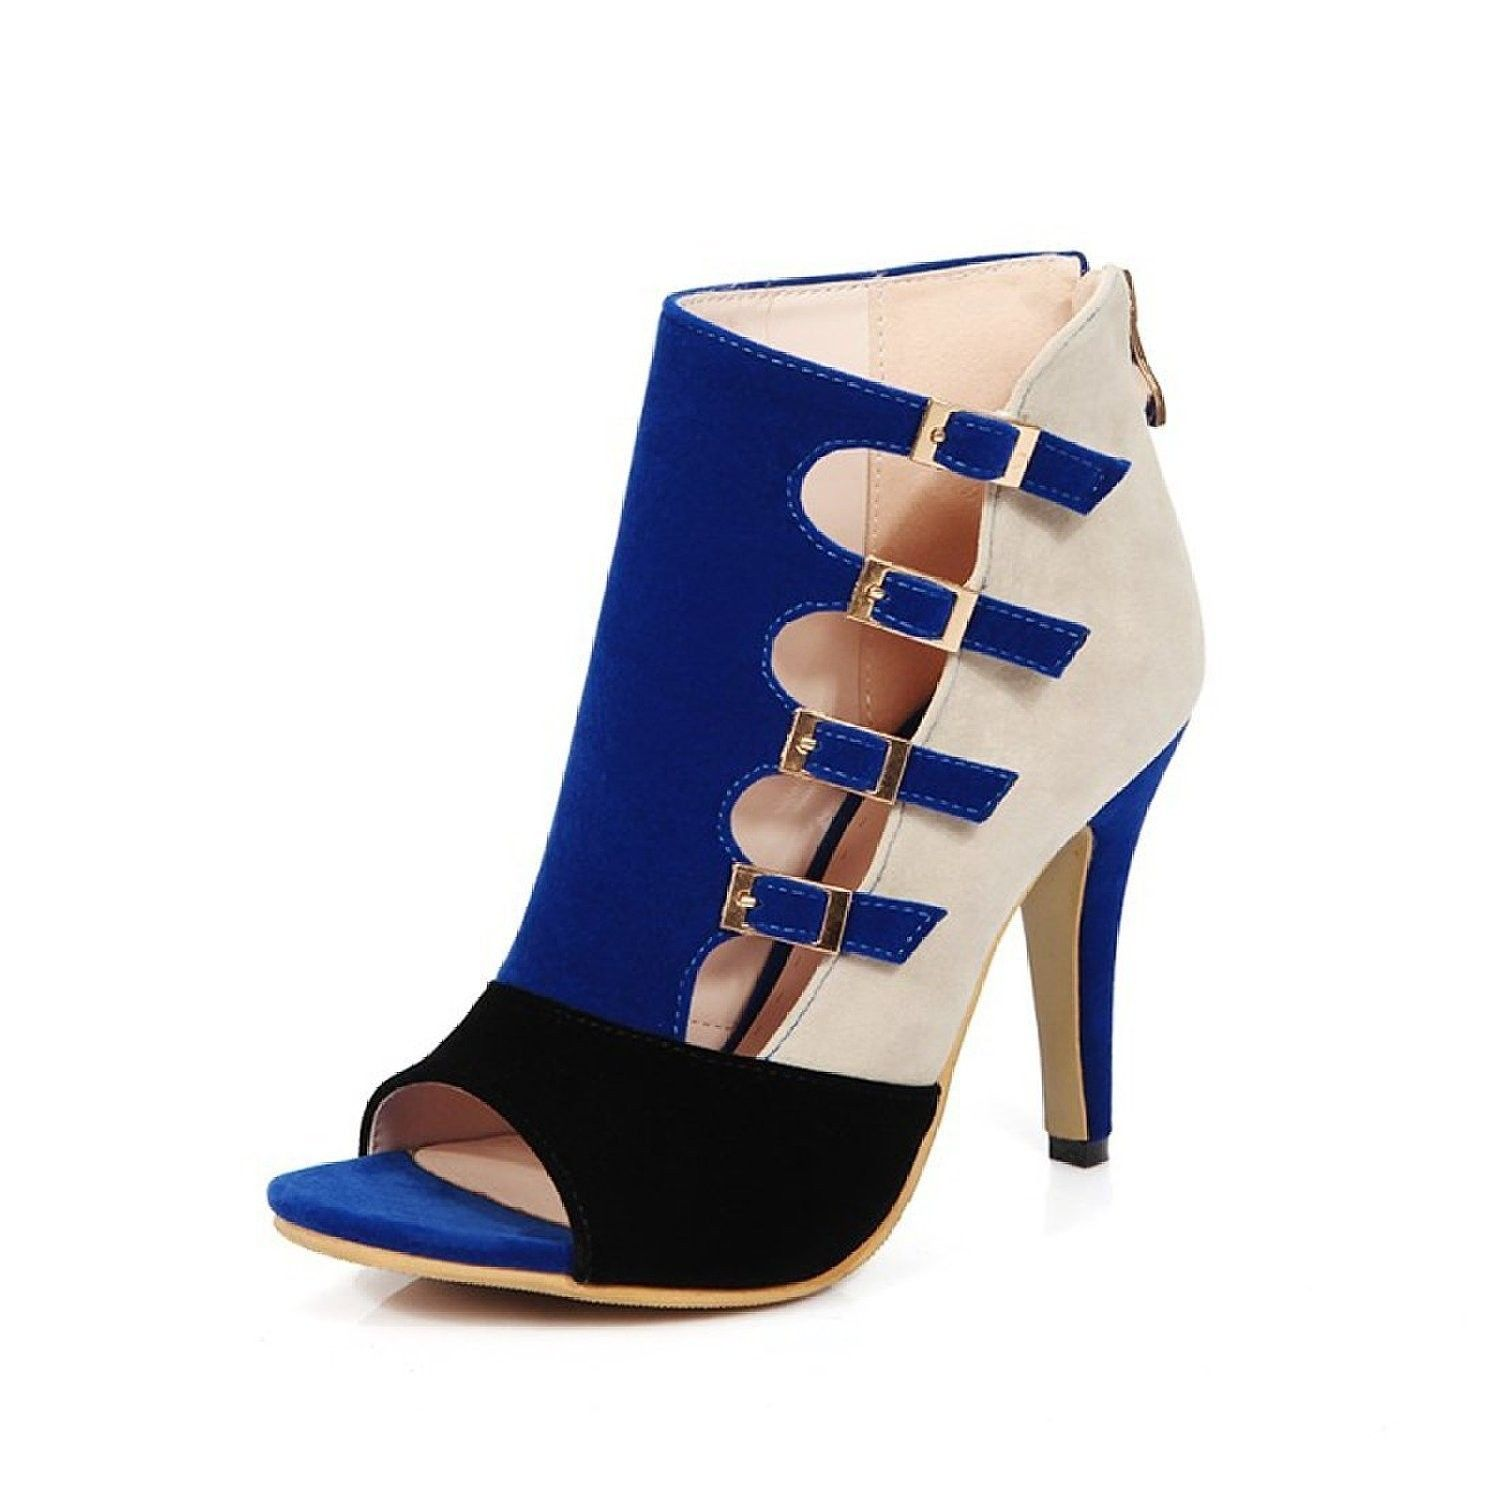 6440bbc1daf518 Women s Peep Toe Sexy High Heels Ankle Pumps Cutout Ankle Booties - Blue -  CW12I90JEY7 - Women s Shoes